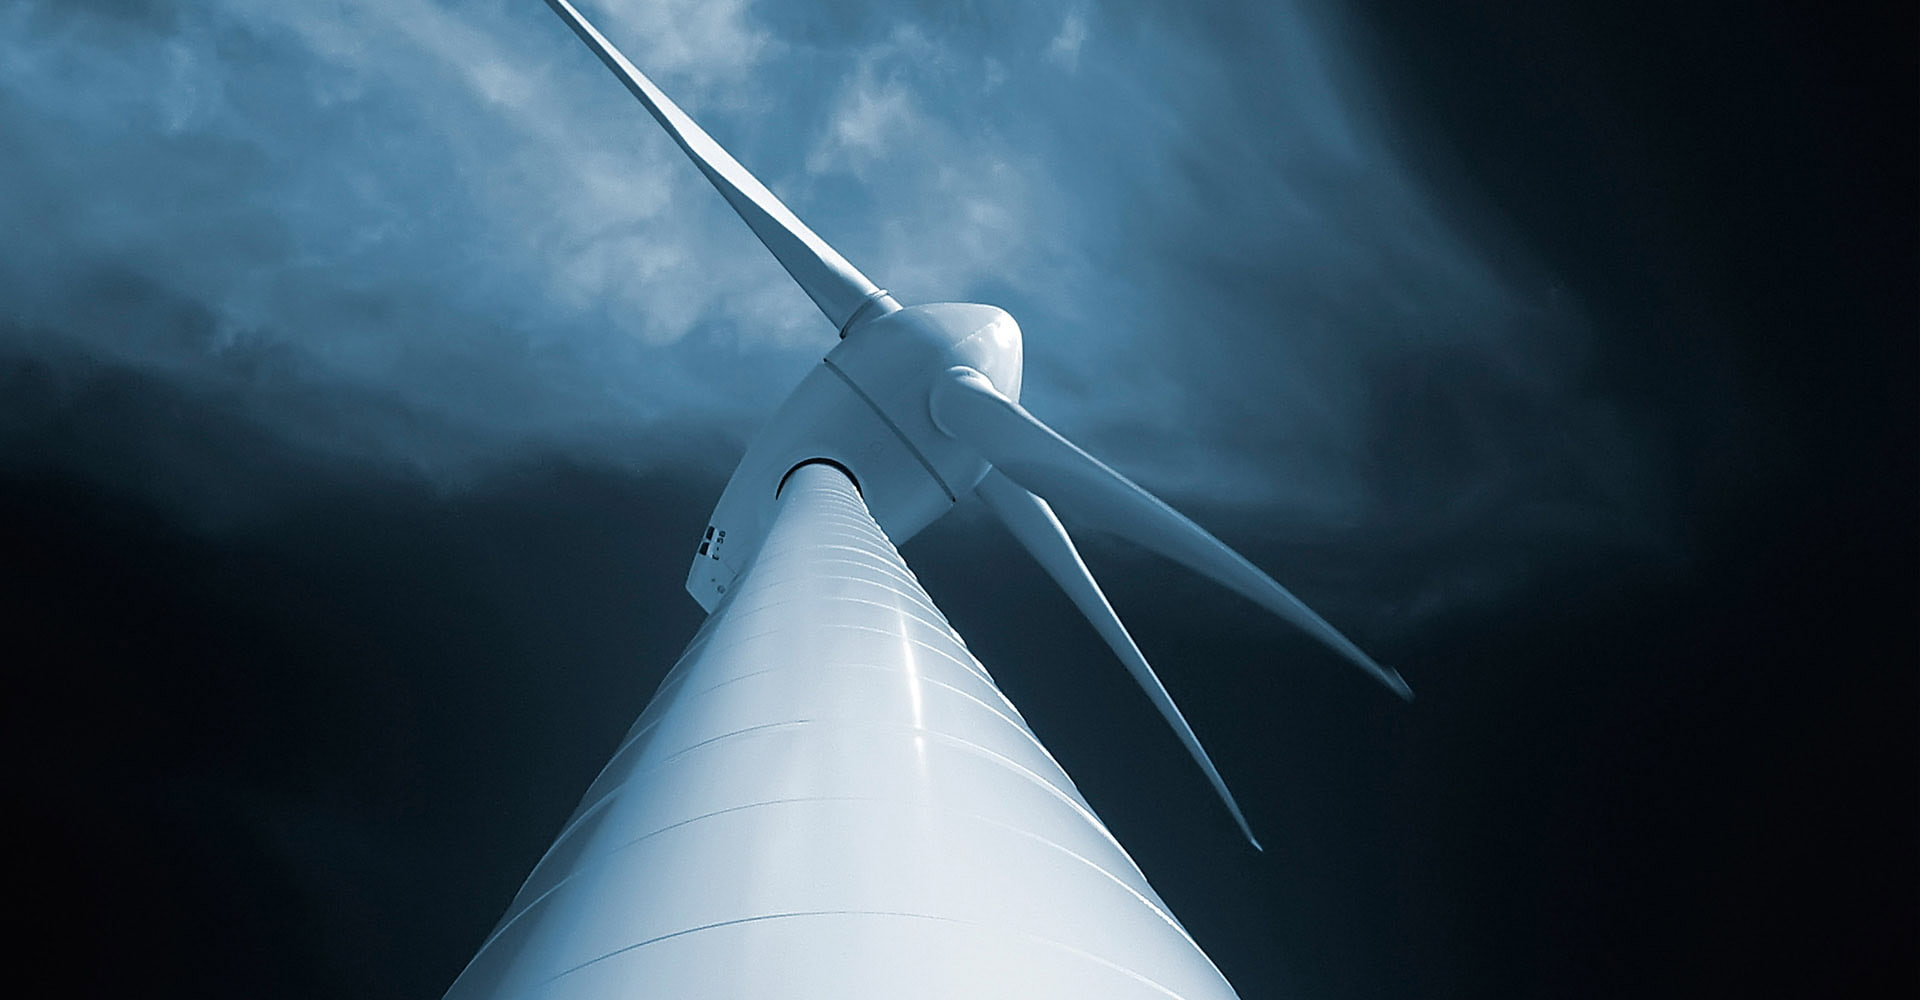 Industry Wind Power by KTR Systems GmbH